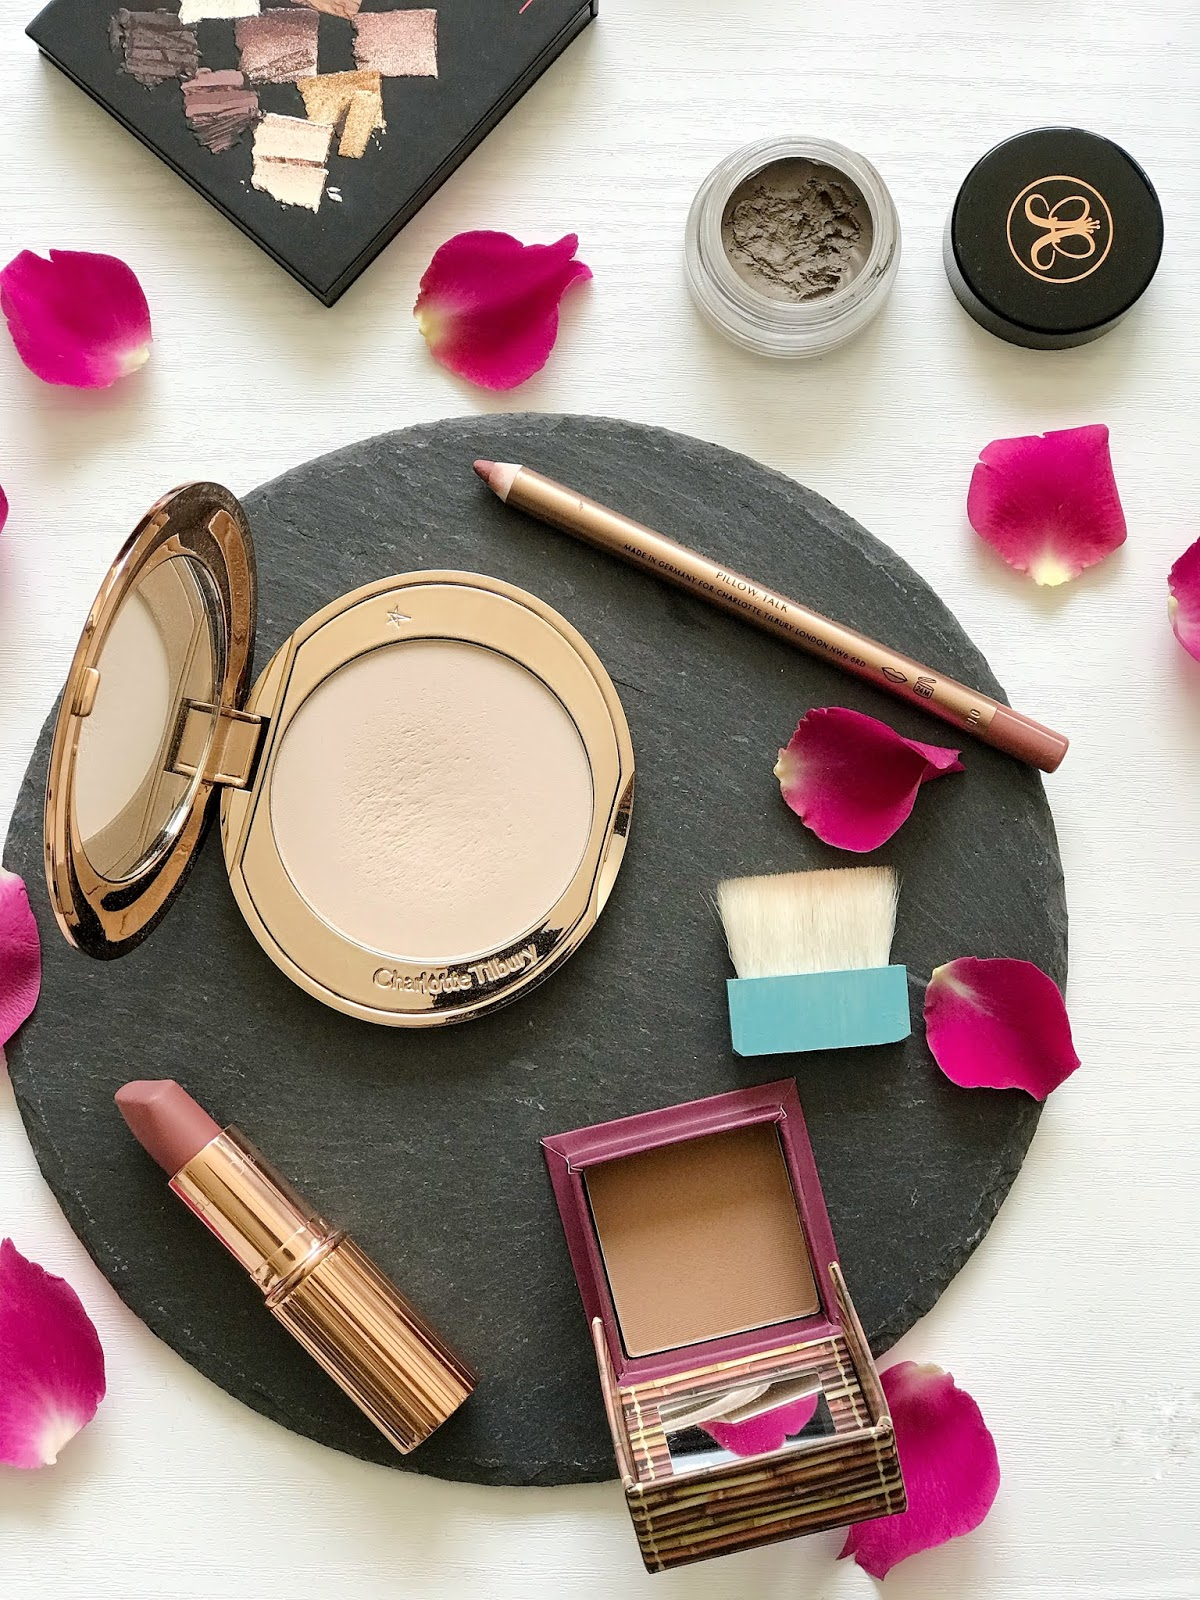 charlotte tilbury airbrush flawless finish powder, benefit hoola bronzer, charlotte tilbury matte revolution pillow talk, lip cheat pillow talk, anastasia beverly hills dipbrow pomade